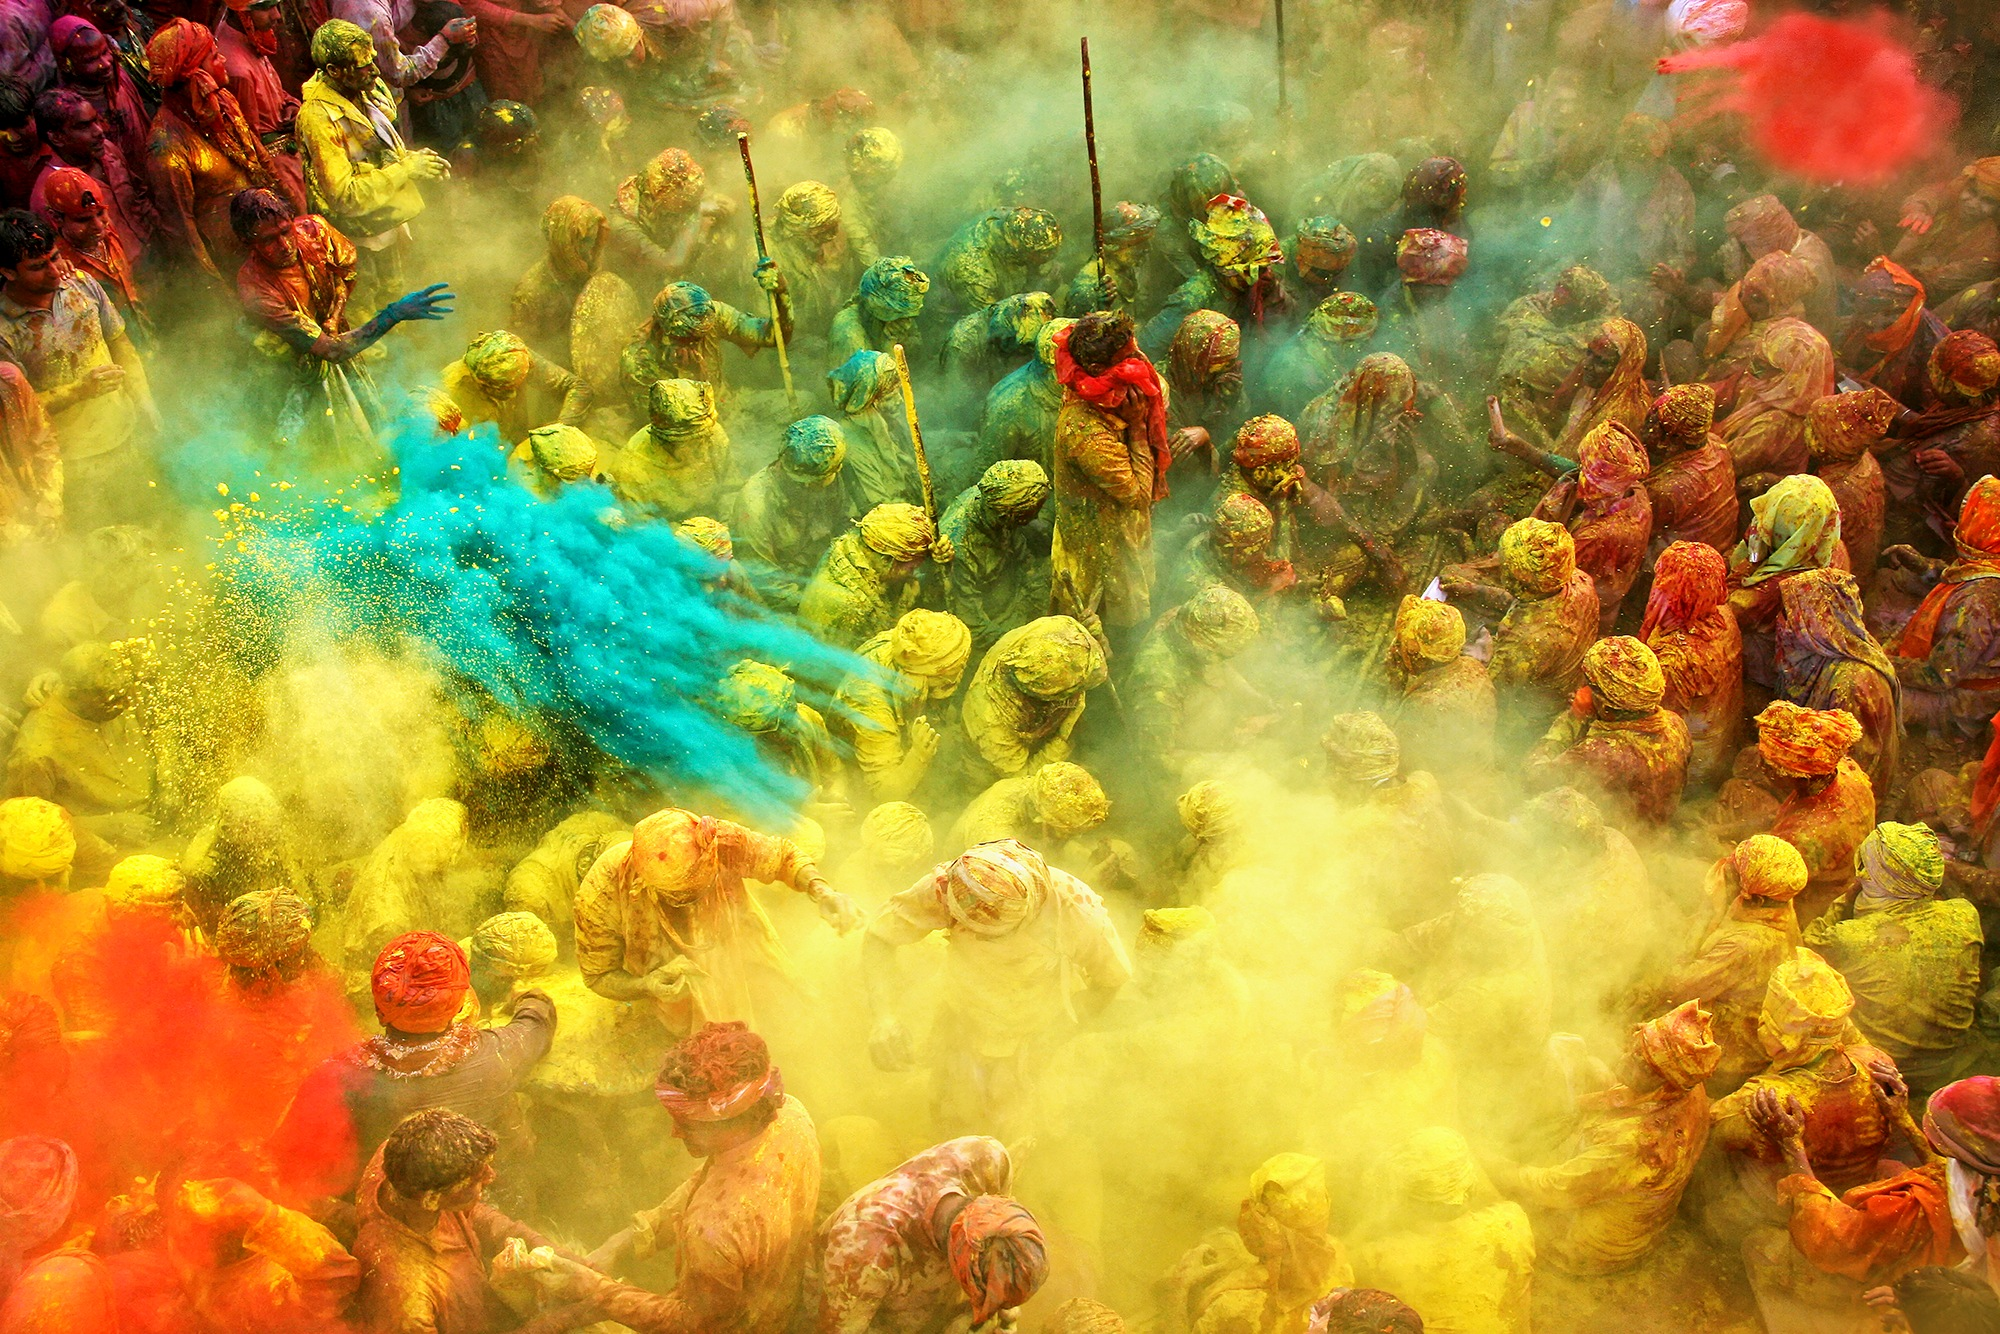 4th Season (Life in Colour) GRAND PRIZE winner - Anurag Kumar - India by HIPA